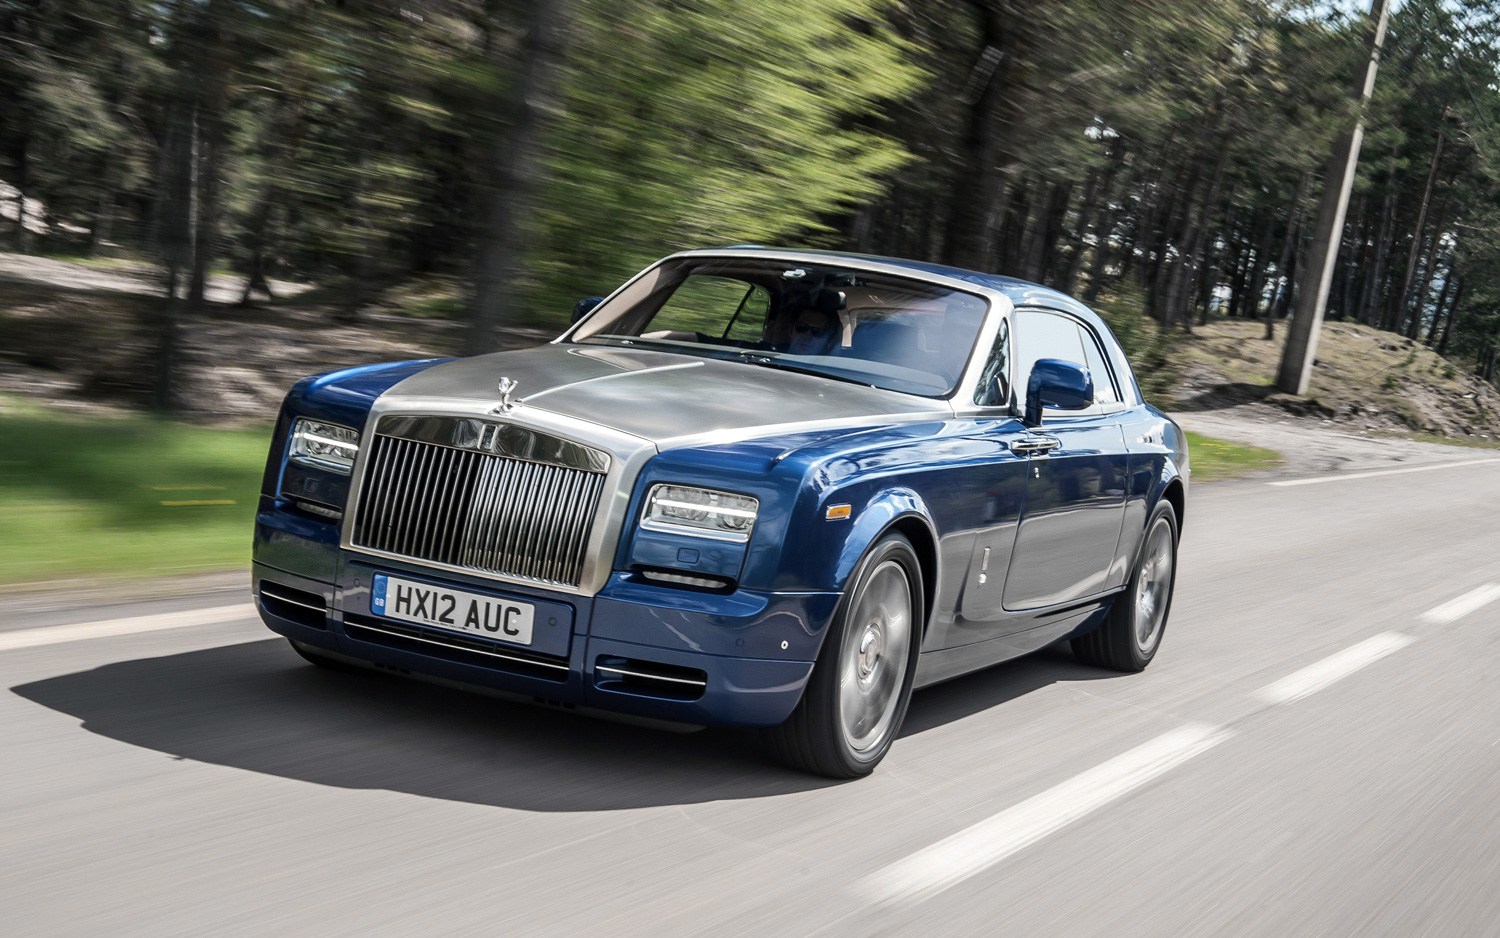 2016 Rolls Royce Phantom Coupe #4